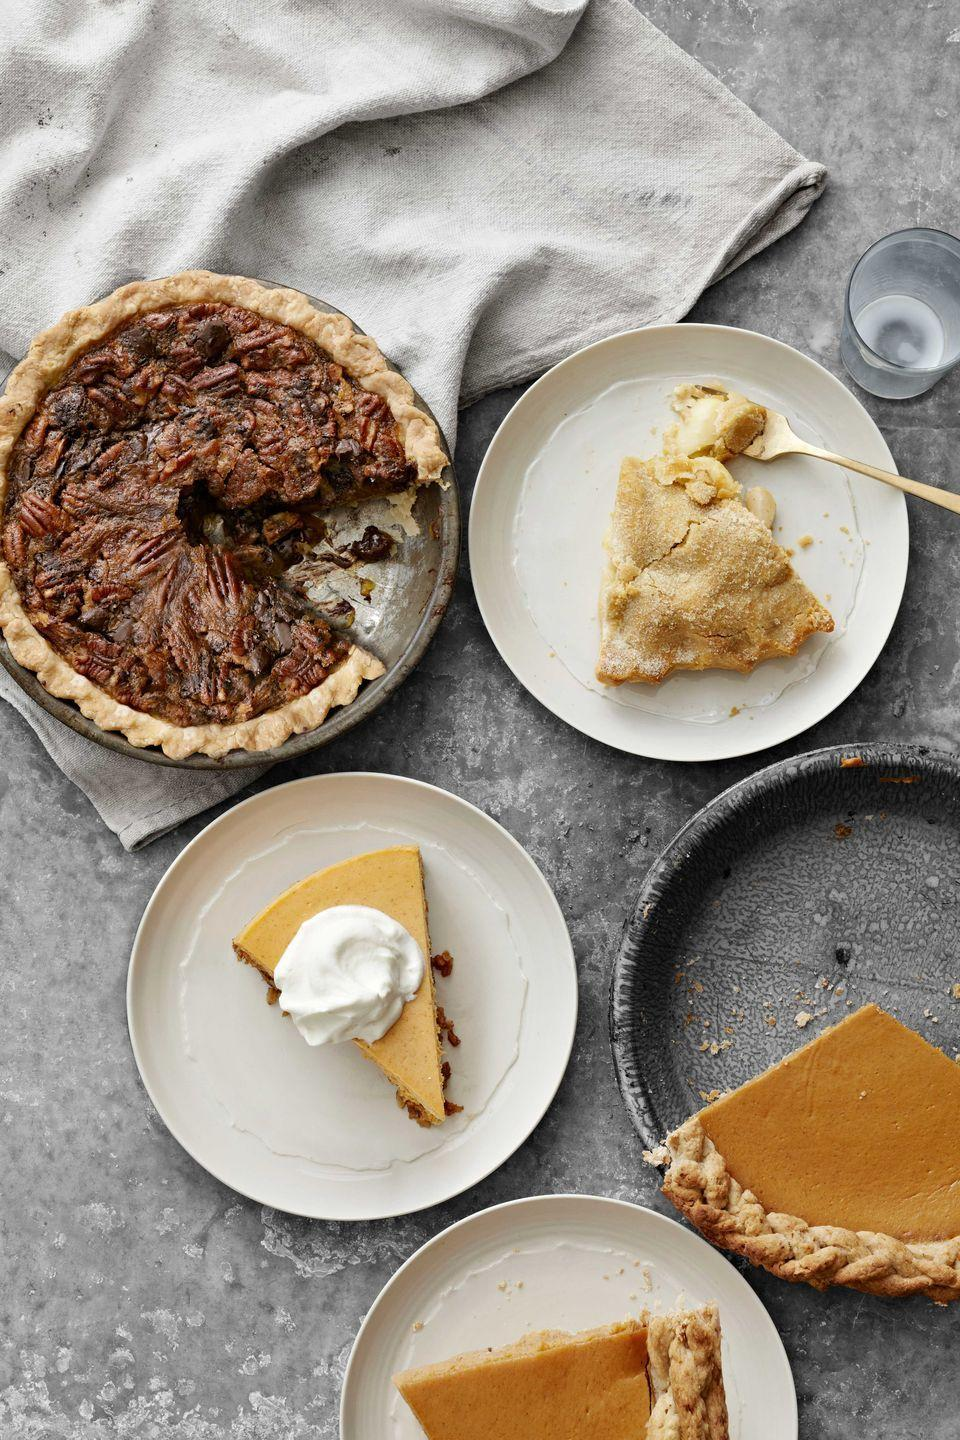 """<p>Both the crust and pie in this recipe can be made up to two days ahead of the celebration, saving you from day-of holiday stress in the kitchen.</p><p><strong>Quick tip:</strong> Use ice-cold butter and water to yield a flaky piecrust—and chill the dough before rolling.</p><p><strong><a href=""""https://www.countryliving.com/food-drinks/recipes/a4097/pumpkin-pie-walnut-crust-recipe-clv1112/"""" rel=""""nofollow noopener"""" target=""""_blank"""" data-ylk=""""slk:Get the recipe"""" class=""""link rapid-noclick-resp"""">Get the recipe</a>.</strong></p>"""